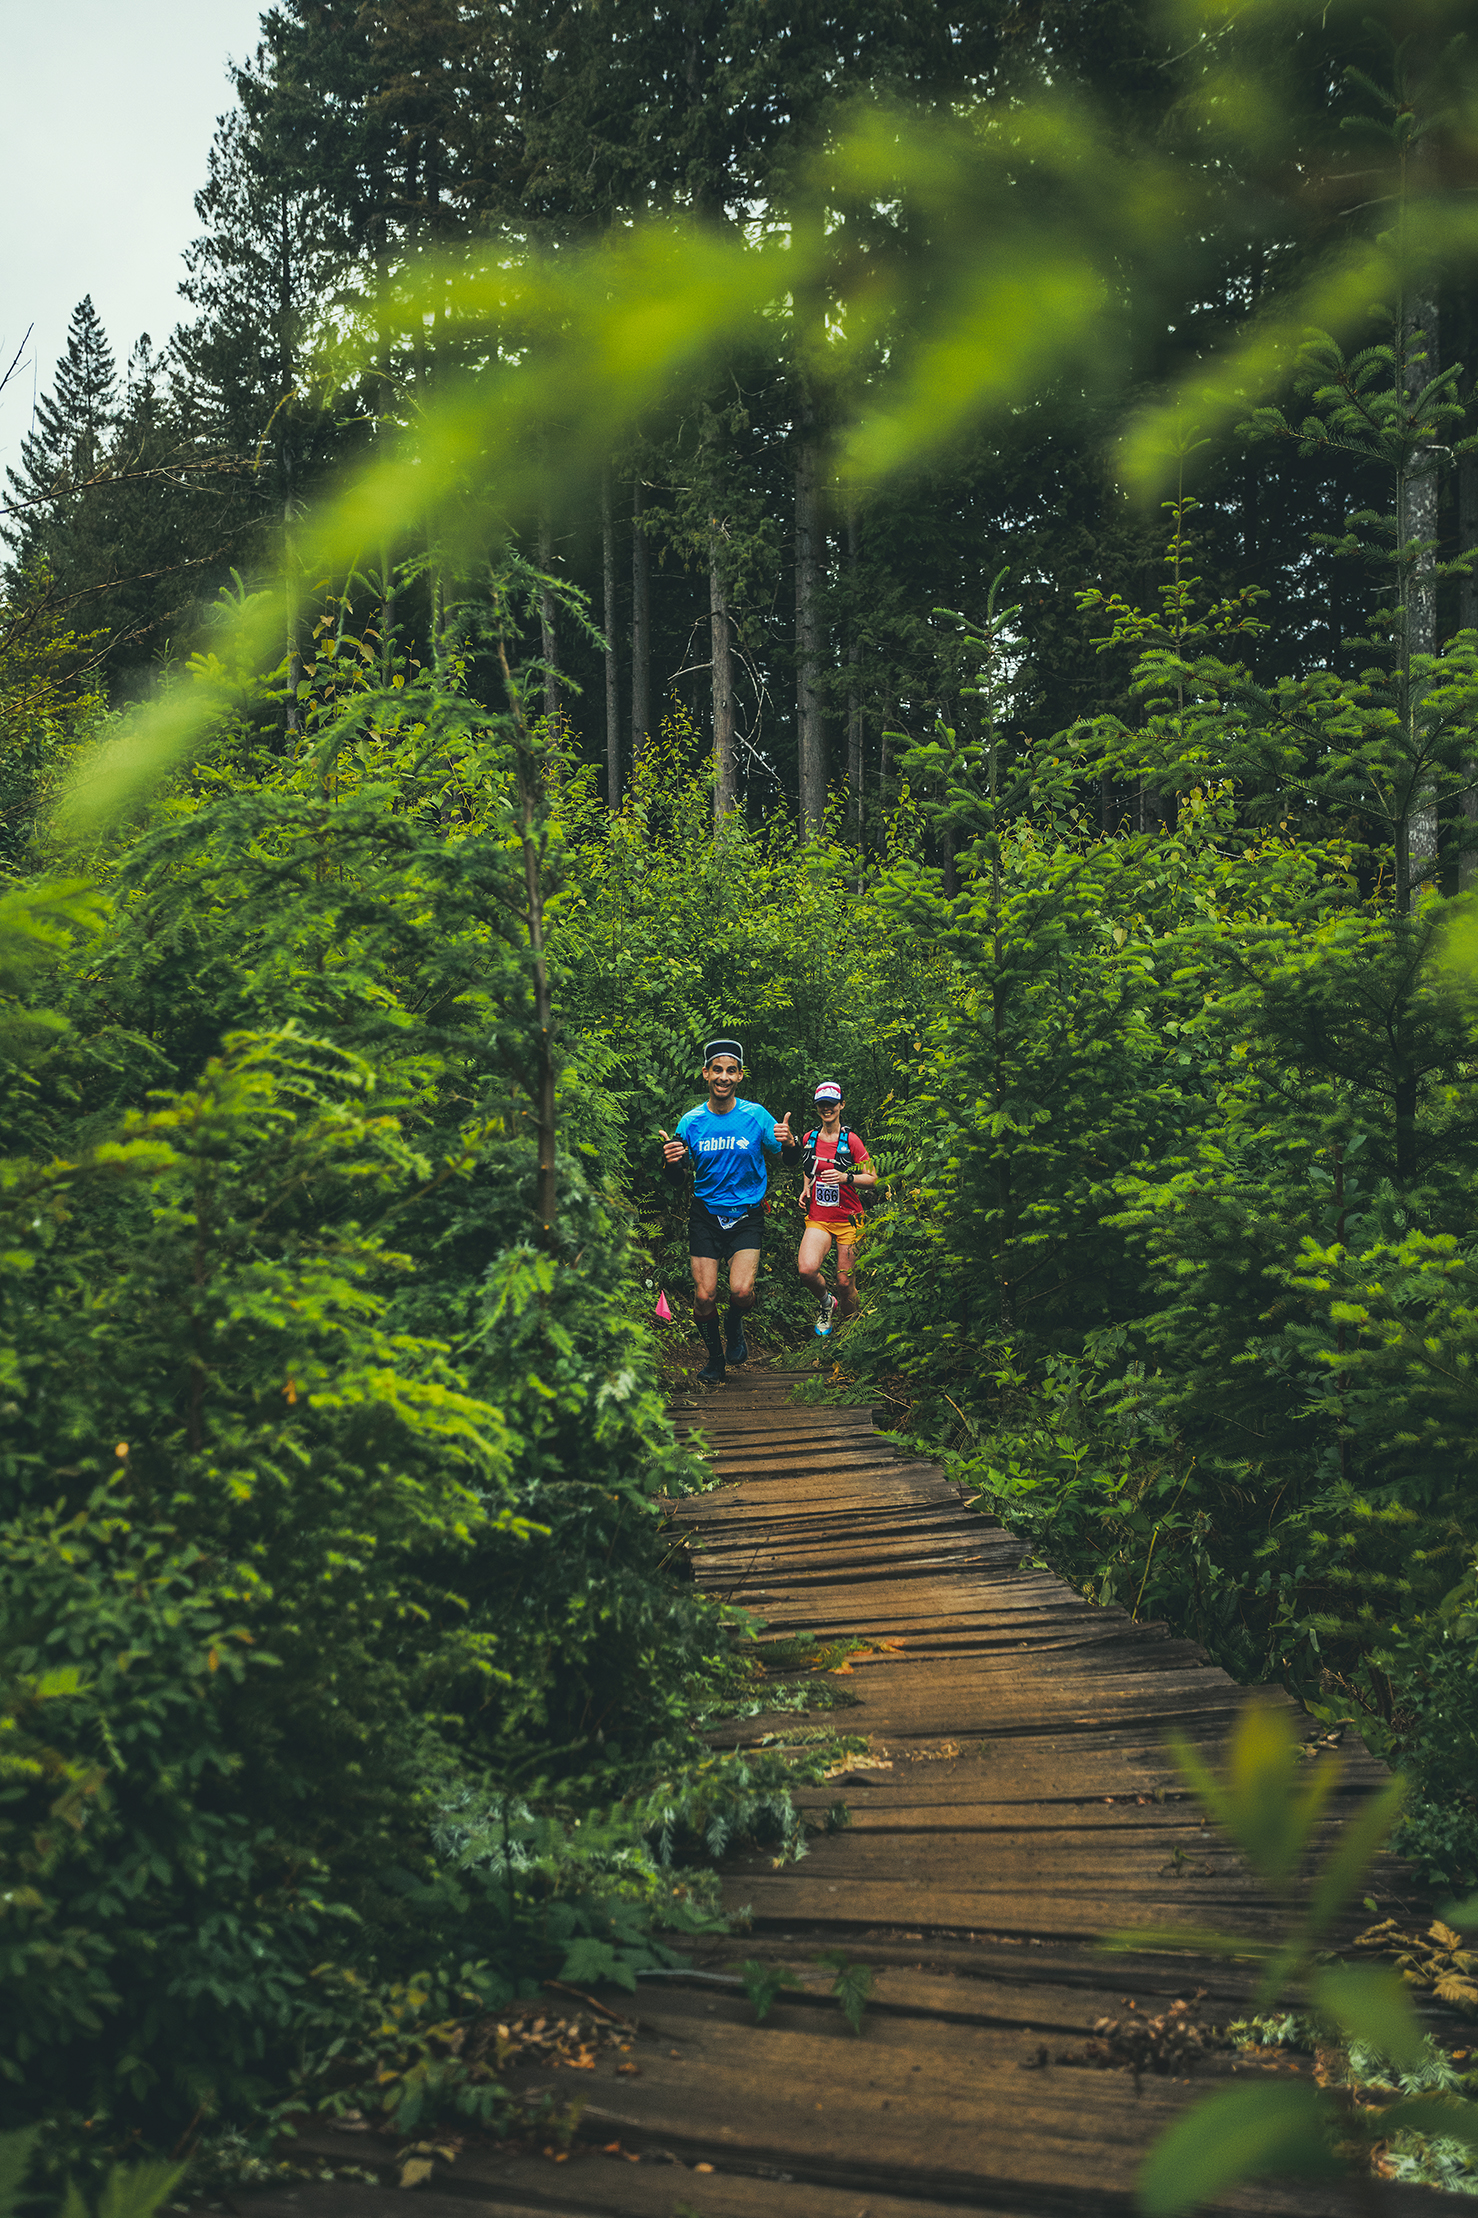 Fraser Valley Trail Races - Bear Mountain - IMG_1435 by Brice Ferre Studio - Vancouver Portrait Adventure and Athlete Photographer.jpg